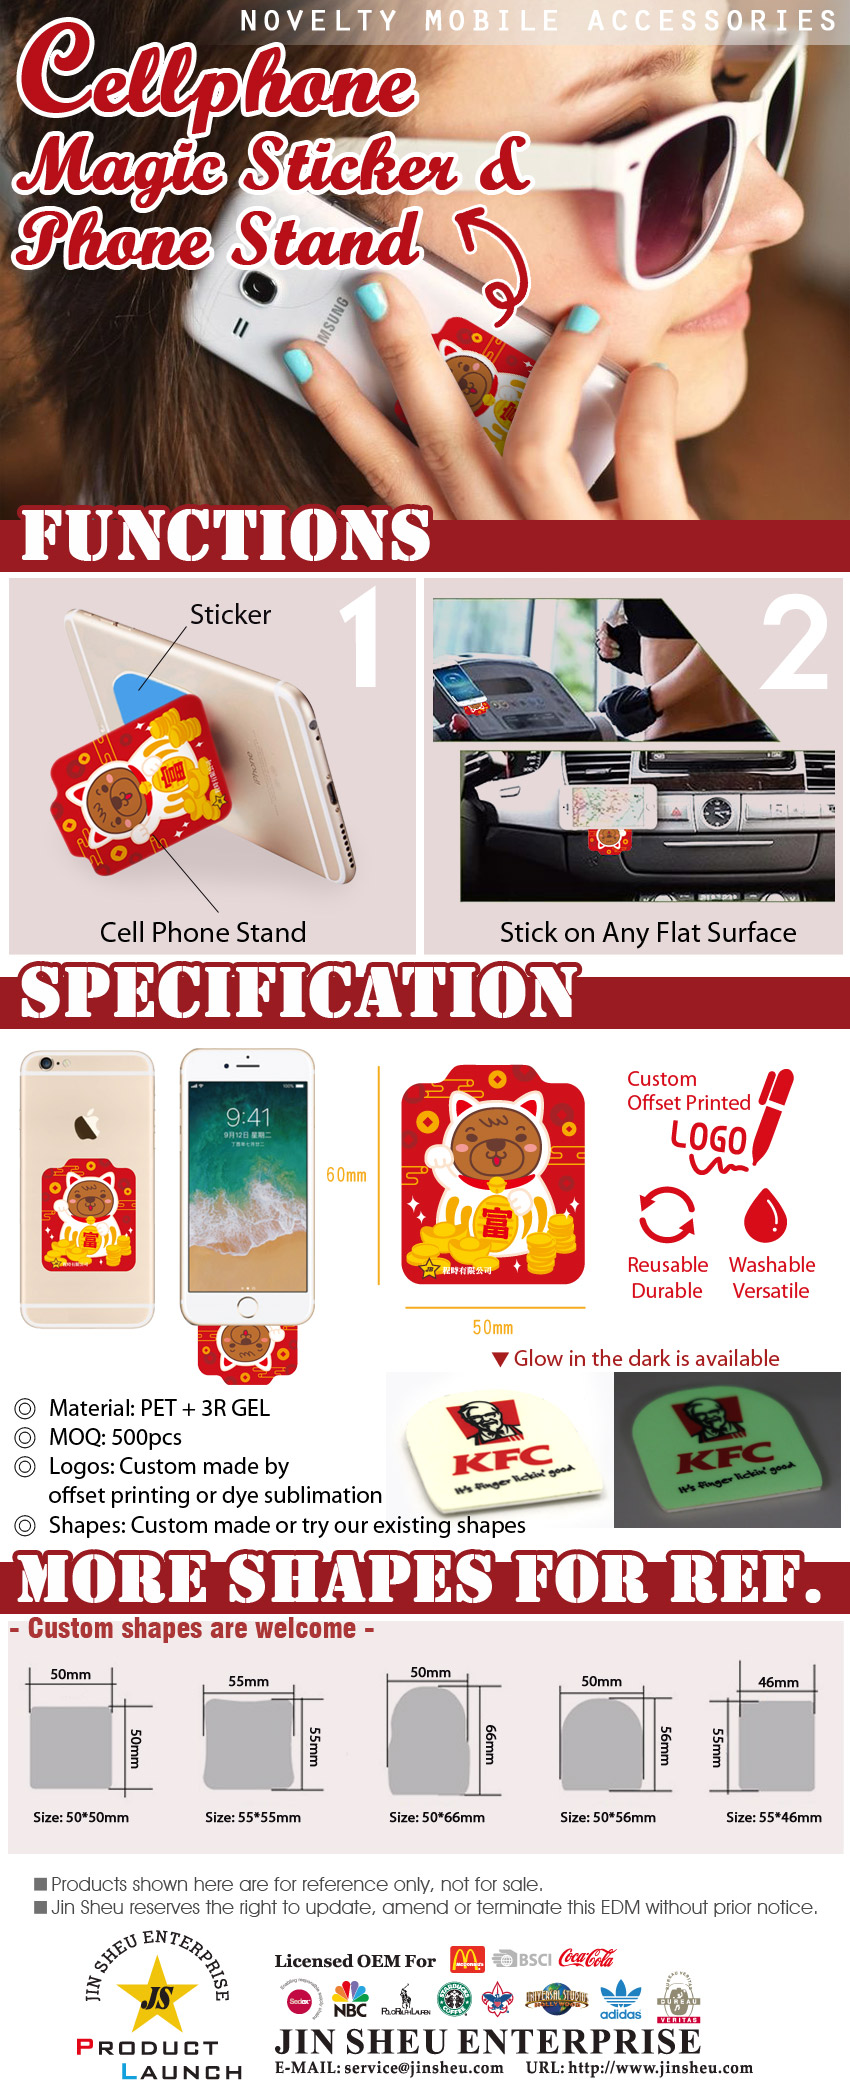 Cellphone Magic Sticker & Phone Stand